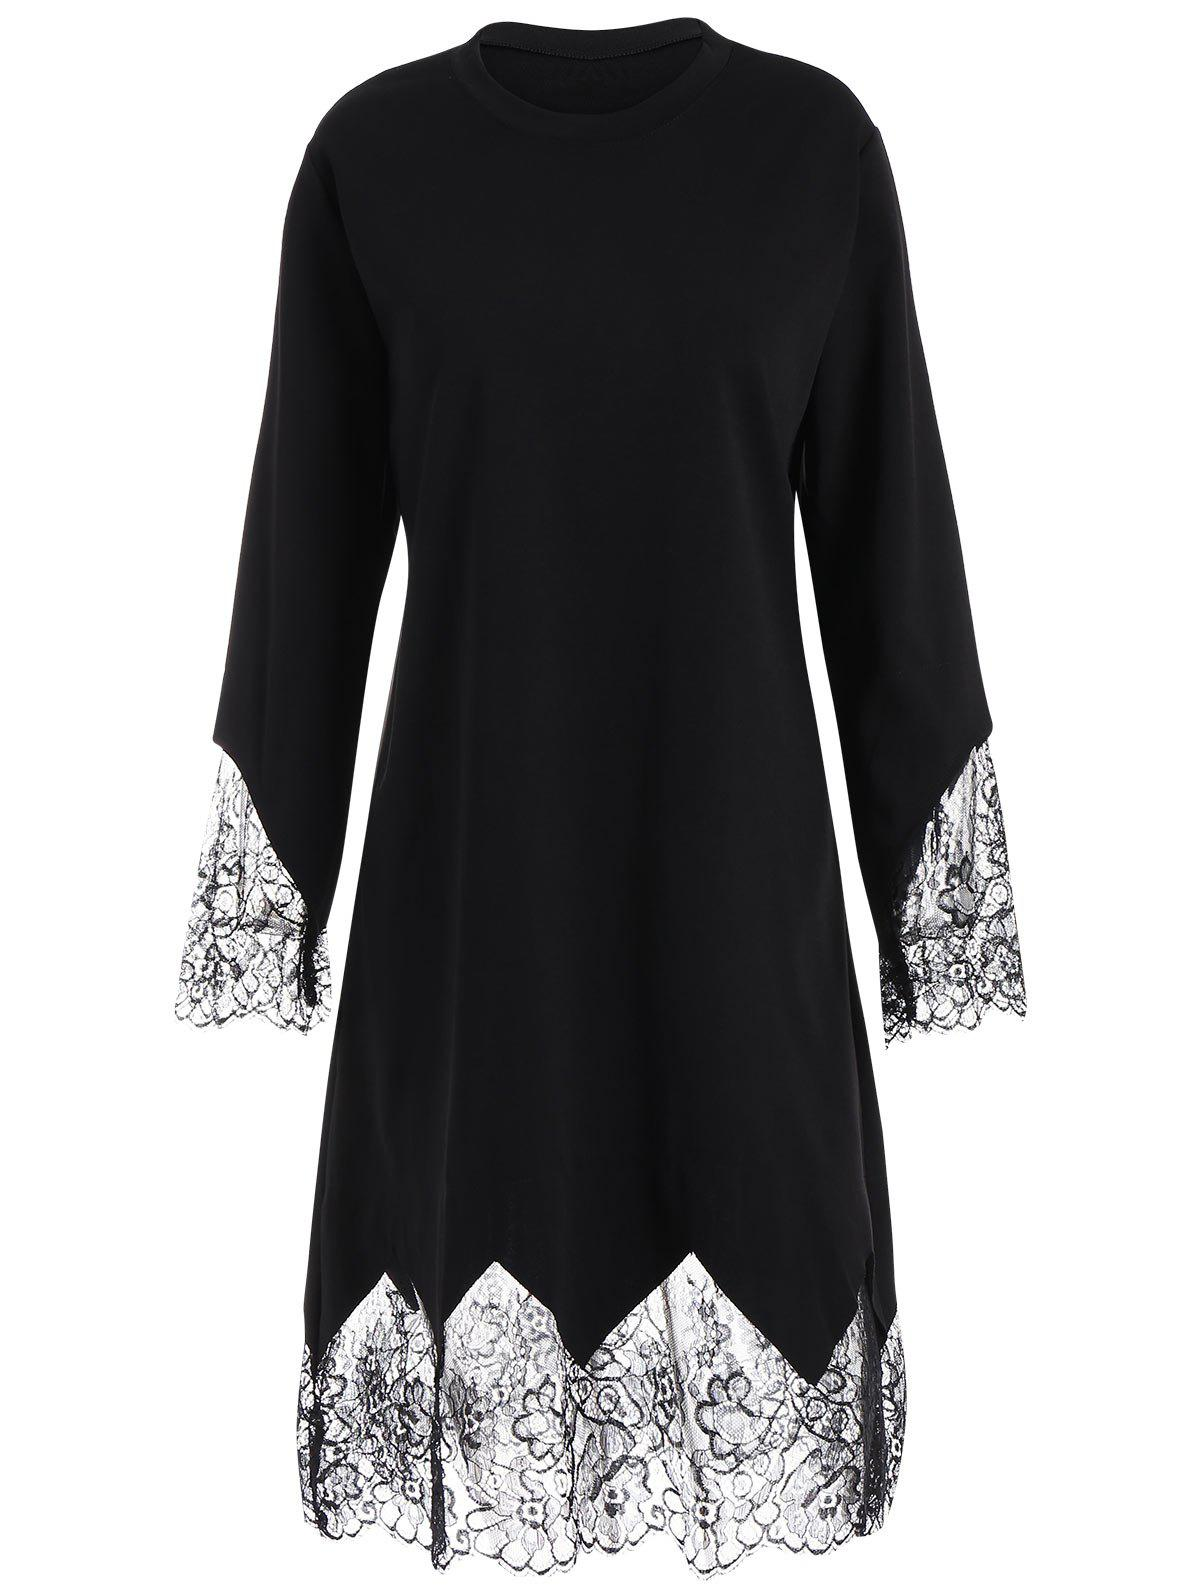 Plus Size Eyelash Lace Trim Dress with Sleeves - BLACK 5XL